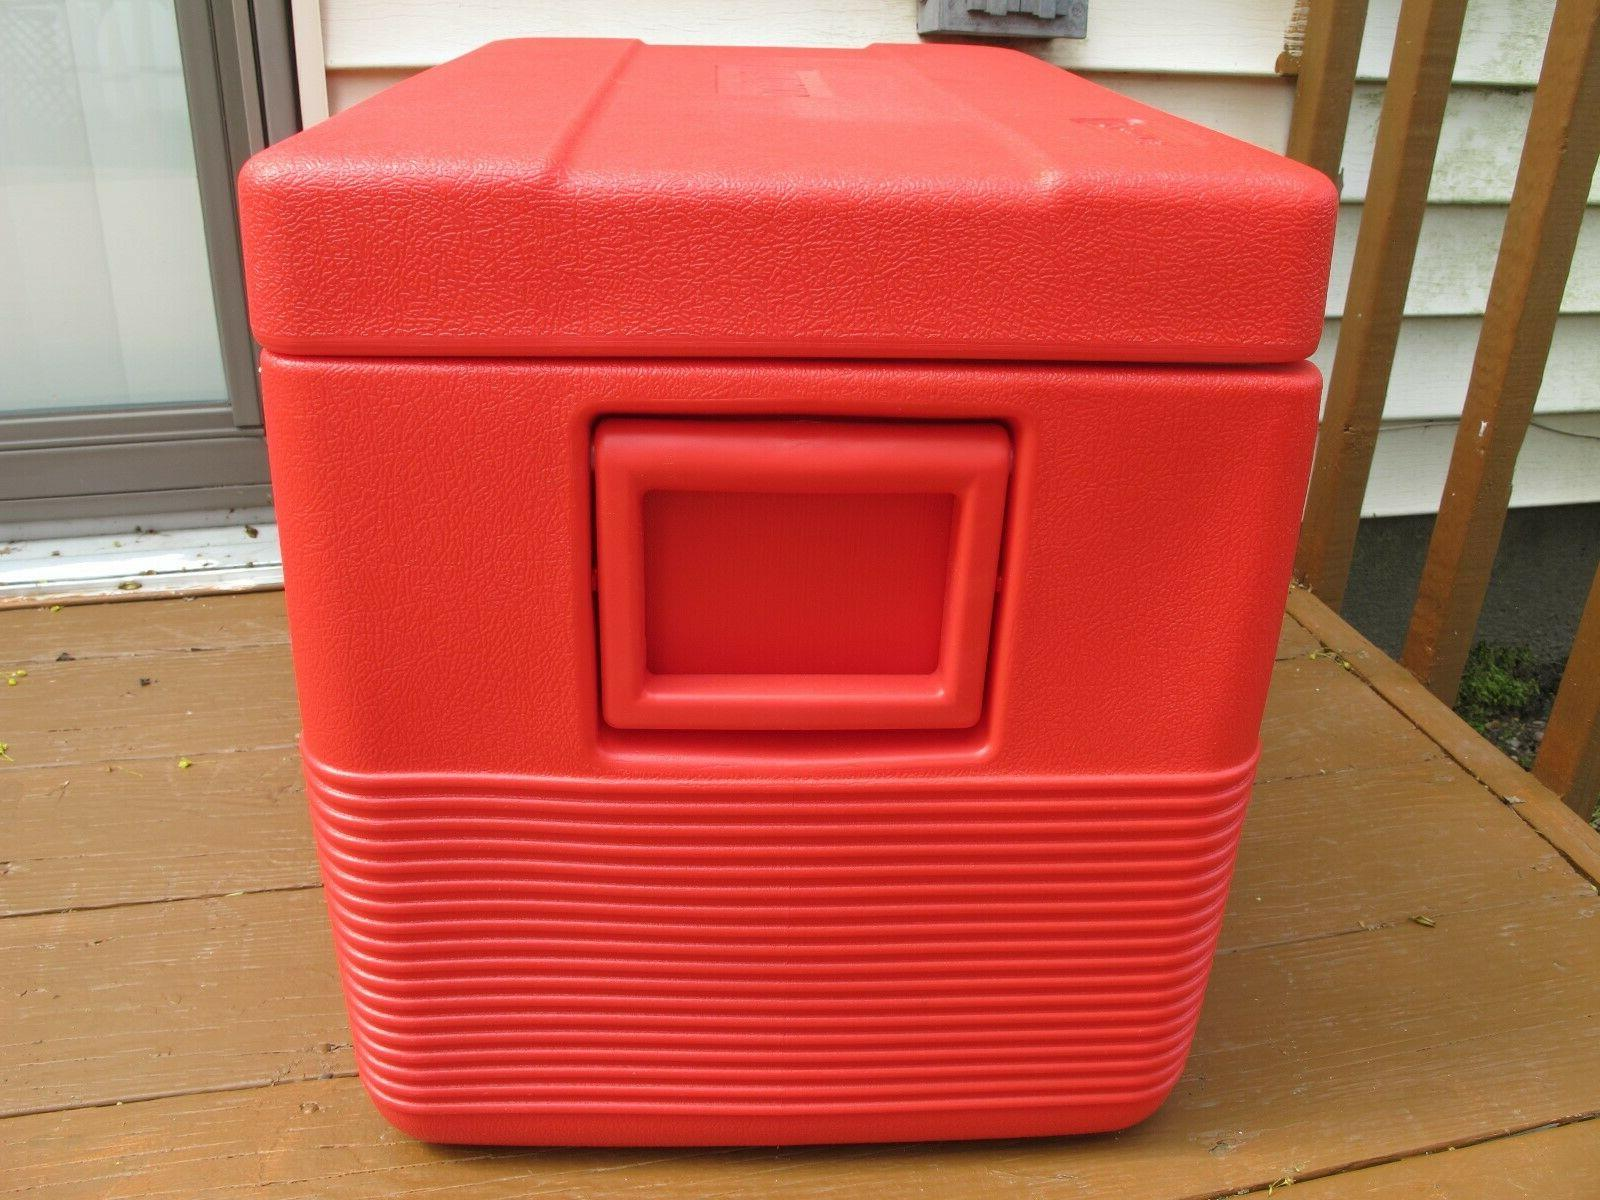 New w/Box Coleman Portable Thermo-Electric Warmer Model 5232